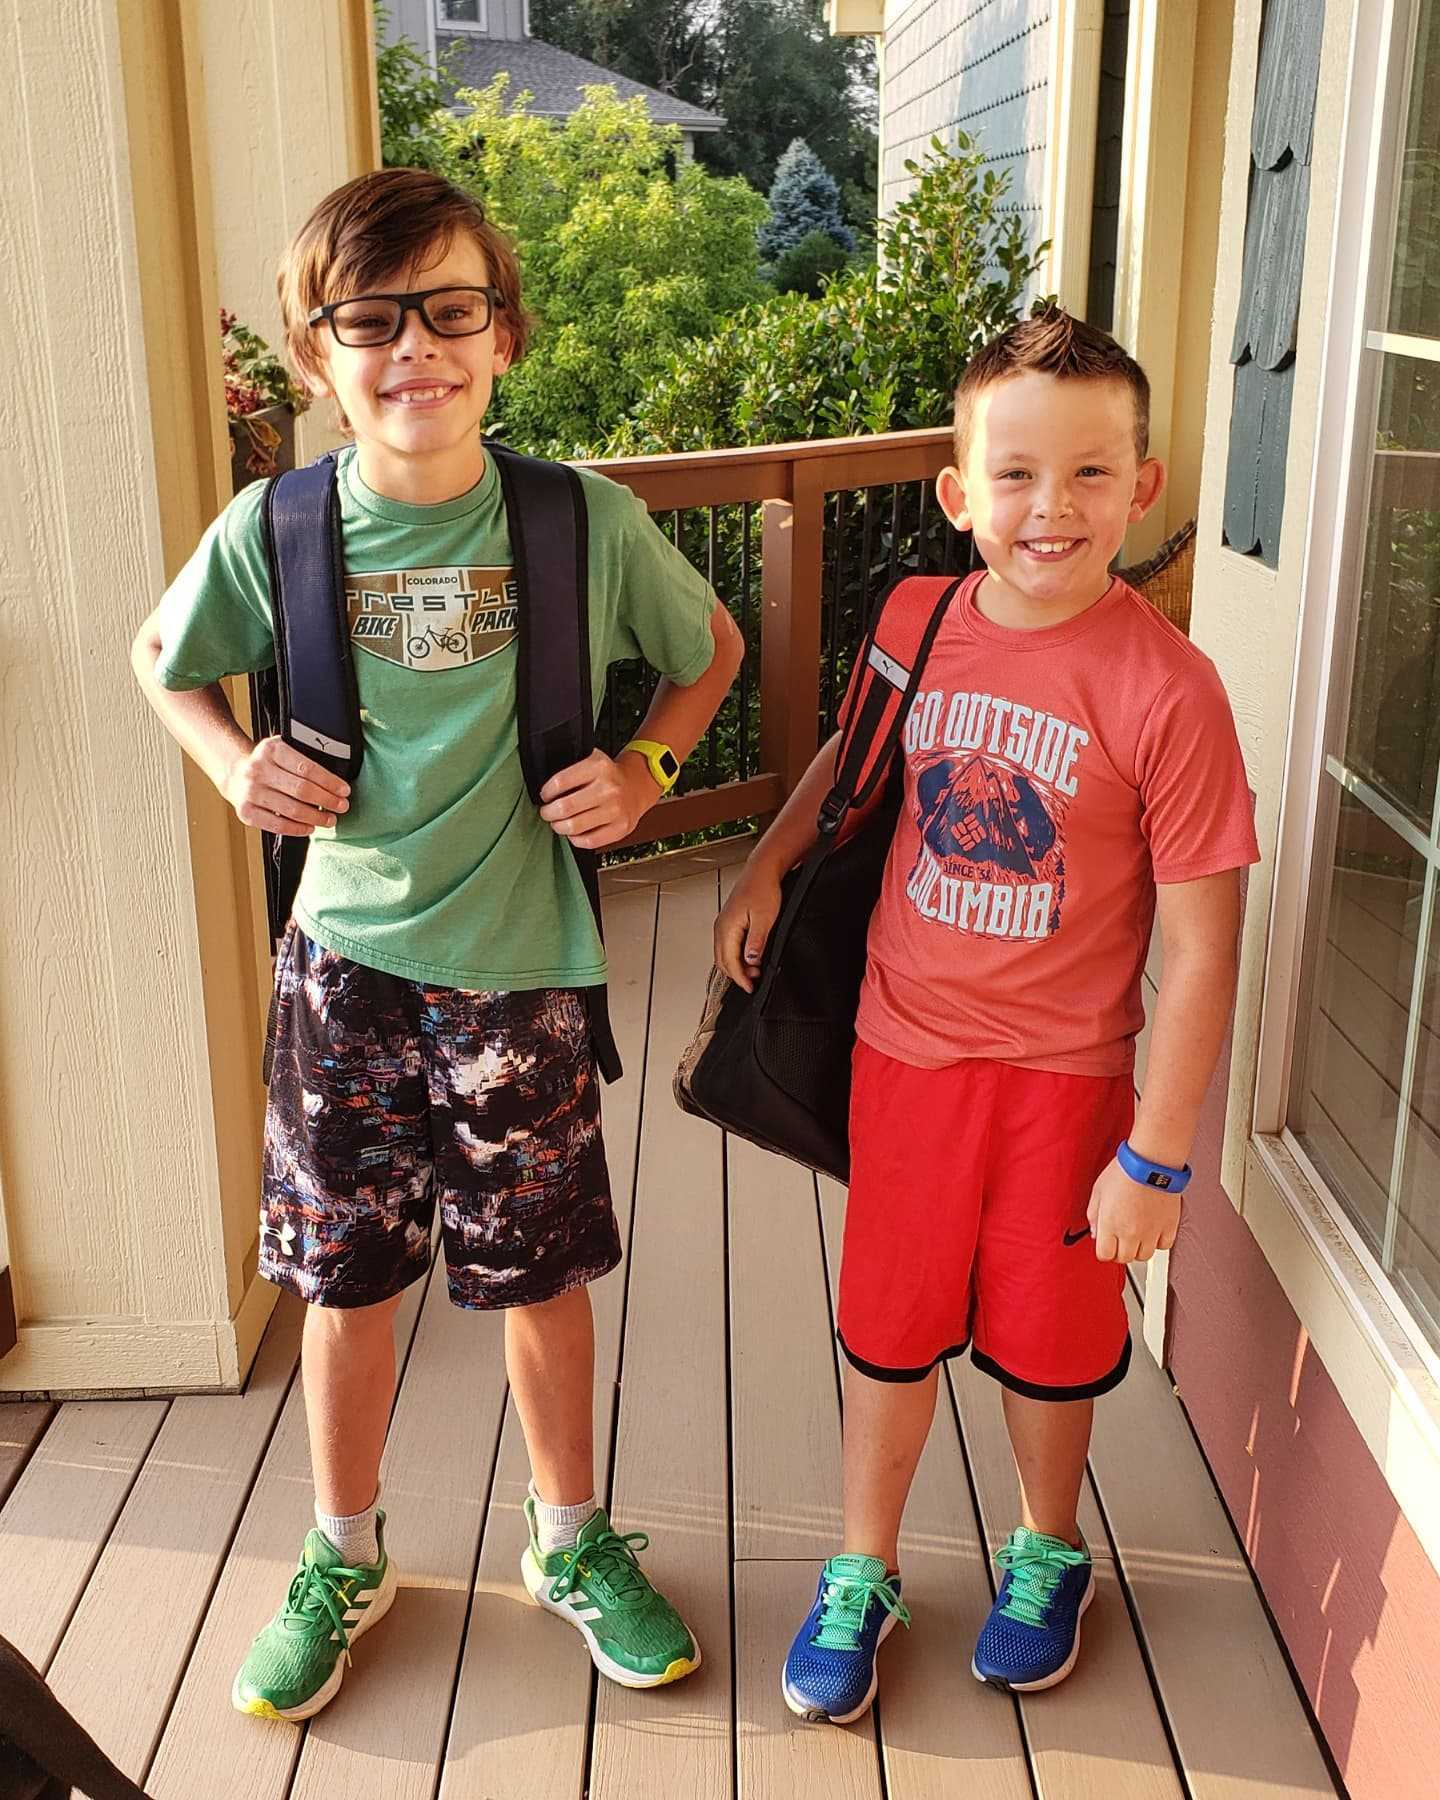 Heather's sons ready for school